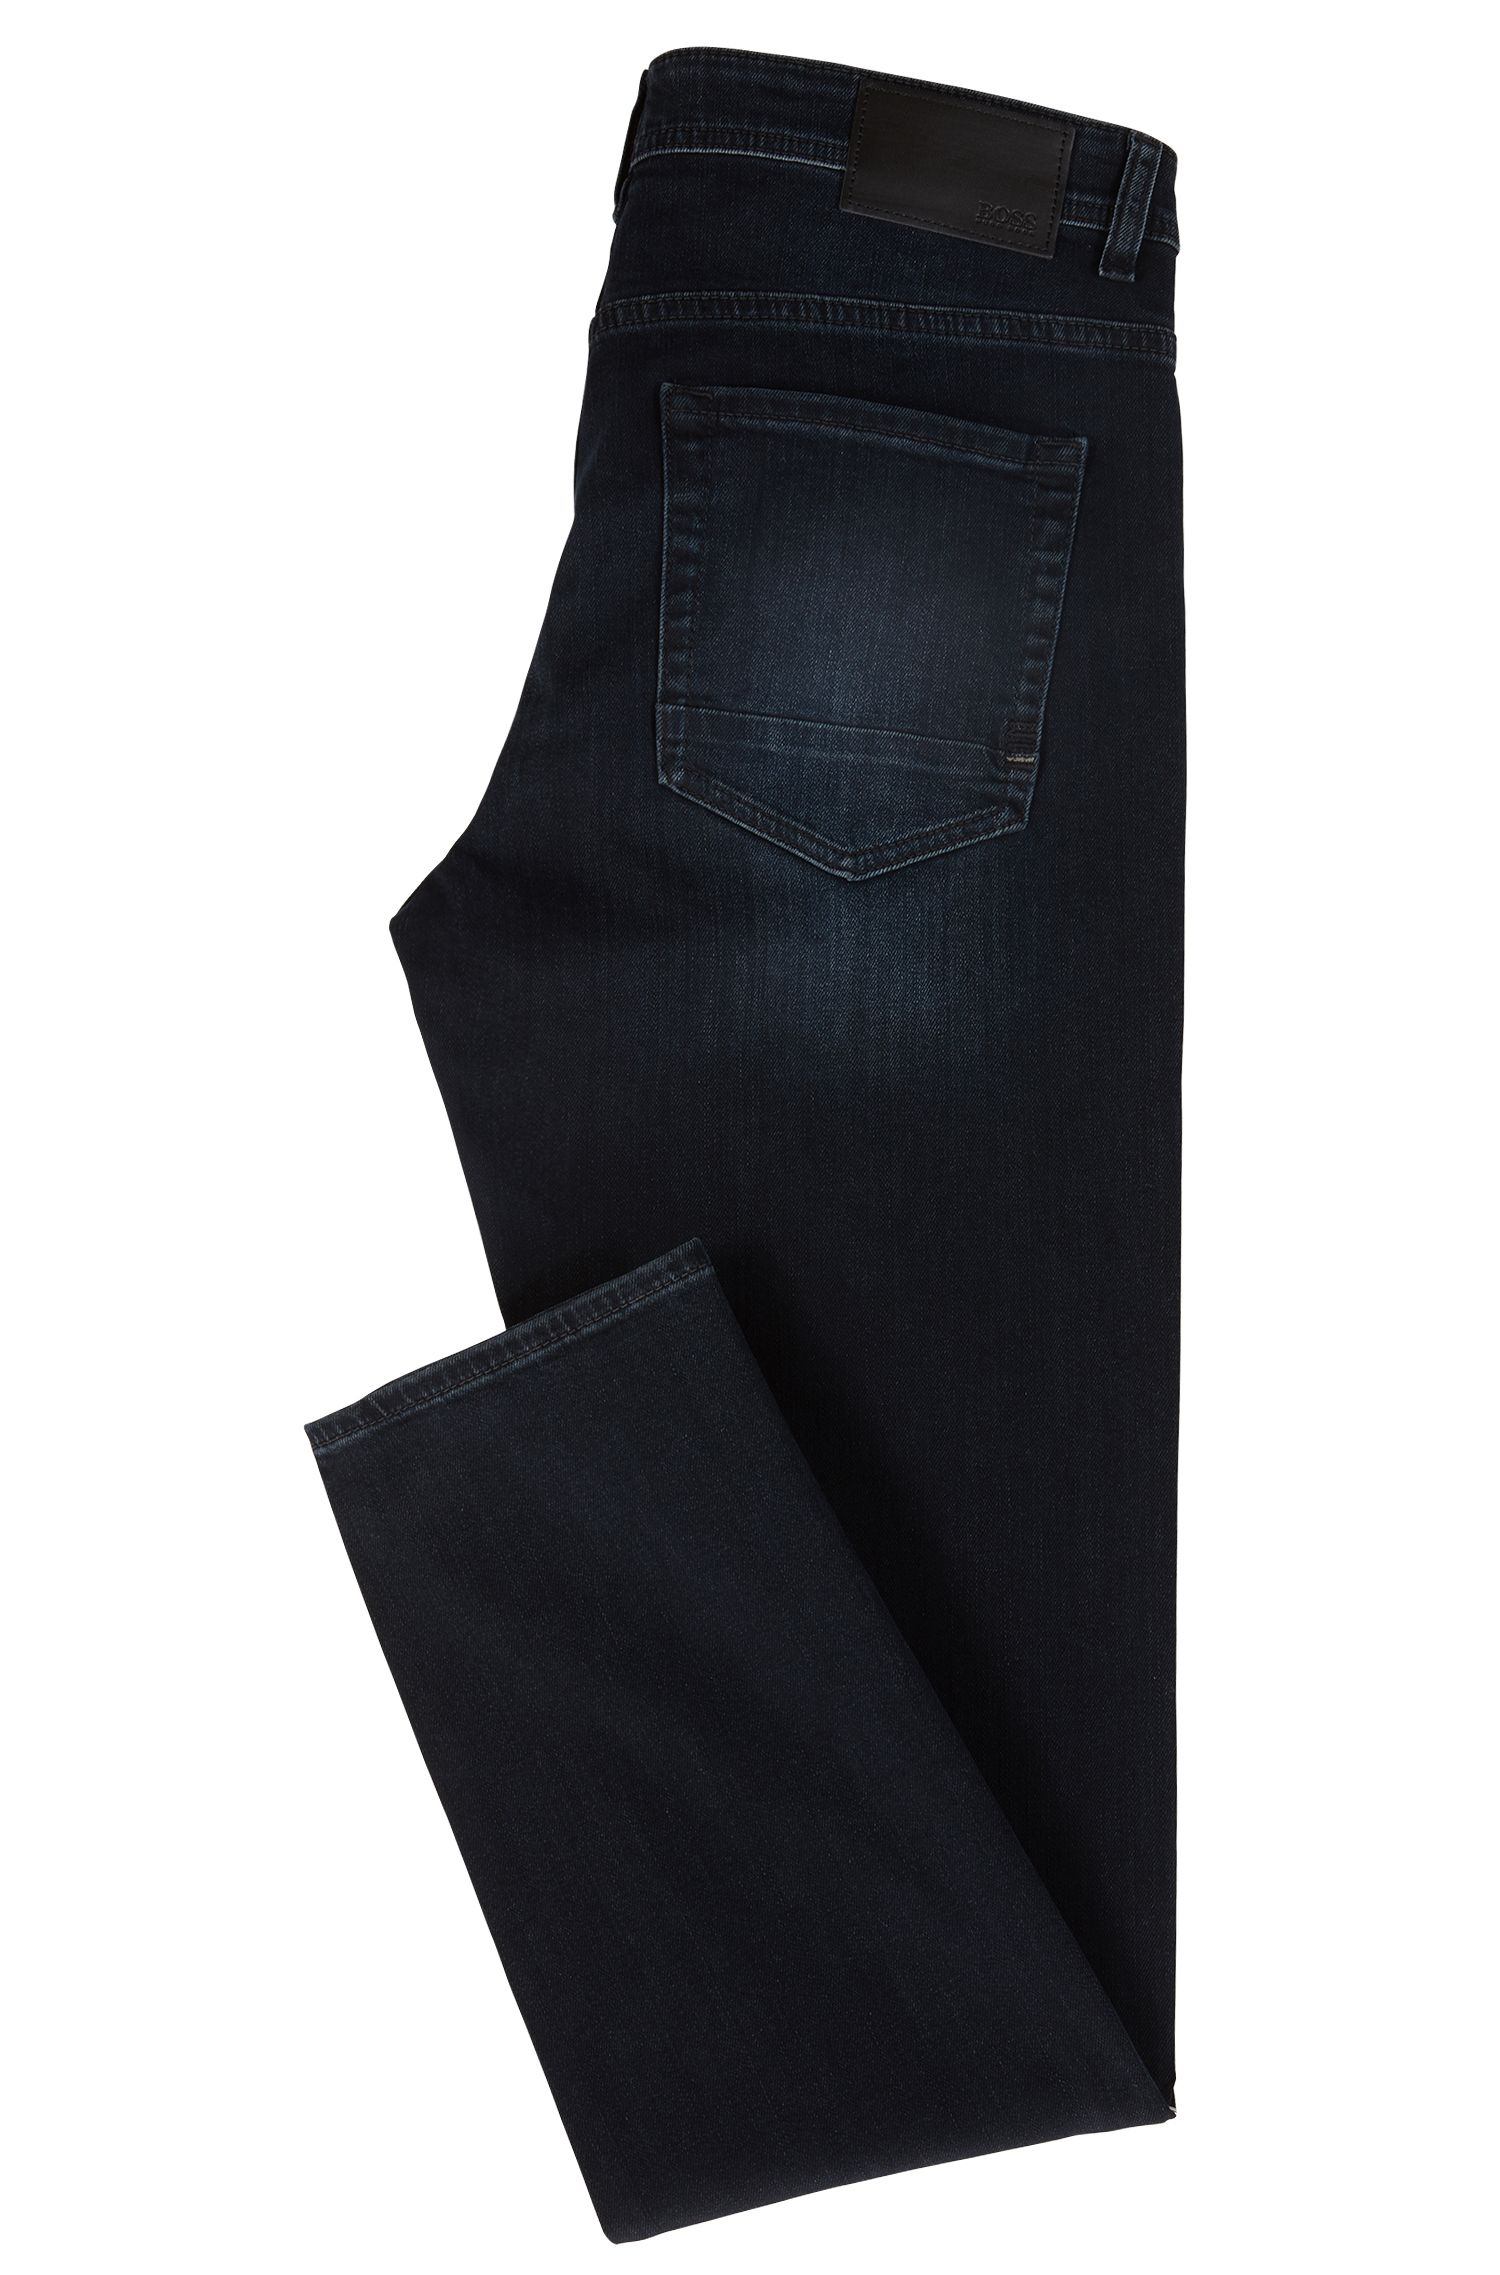 Vaqueros tapered fit en denim elástico azul con teñido especial de color negro